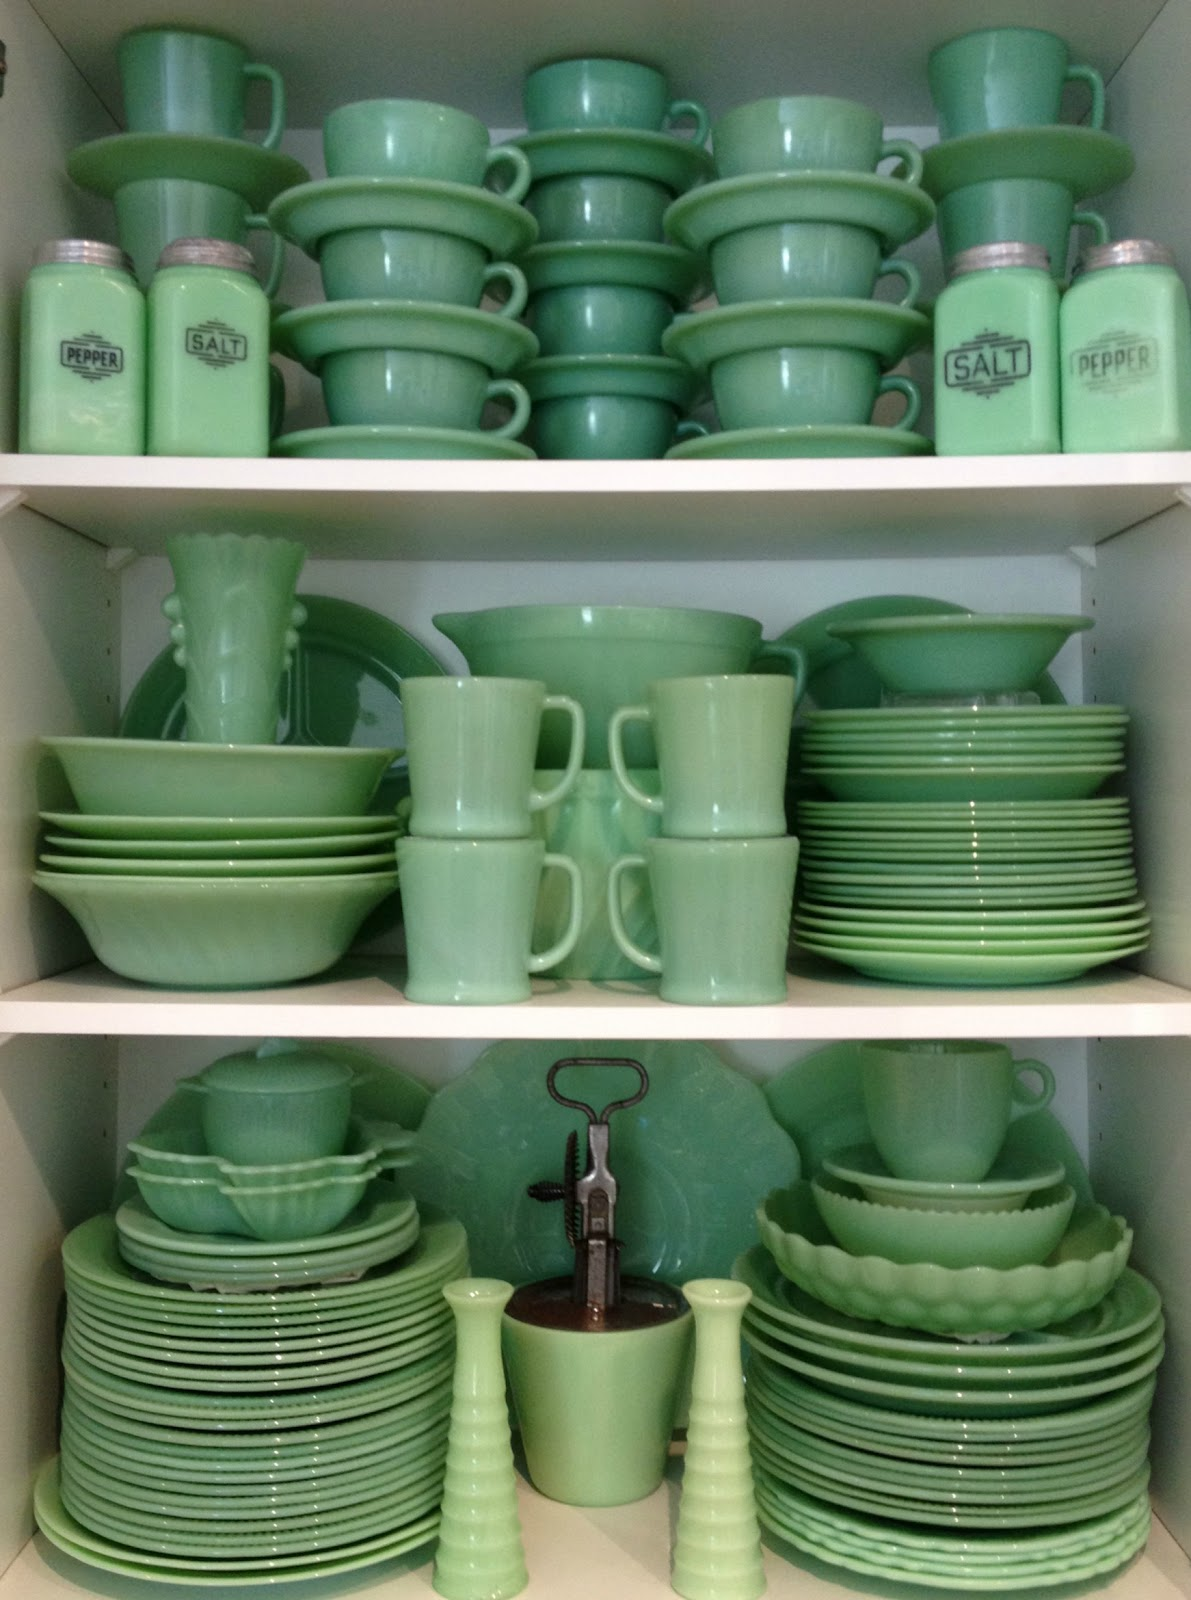 In the 1940s and 1950s jadeite - a stain- and heat-resistant milky-green glassware - was quite common and sold in hardware stores and five-and-tens. & Gin\u0027Gilli\u0027s Vintage Home: Collecting: A Closer Look At Jadeite